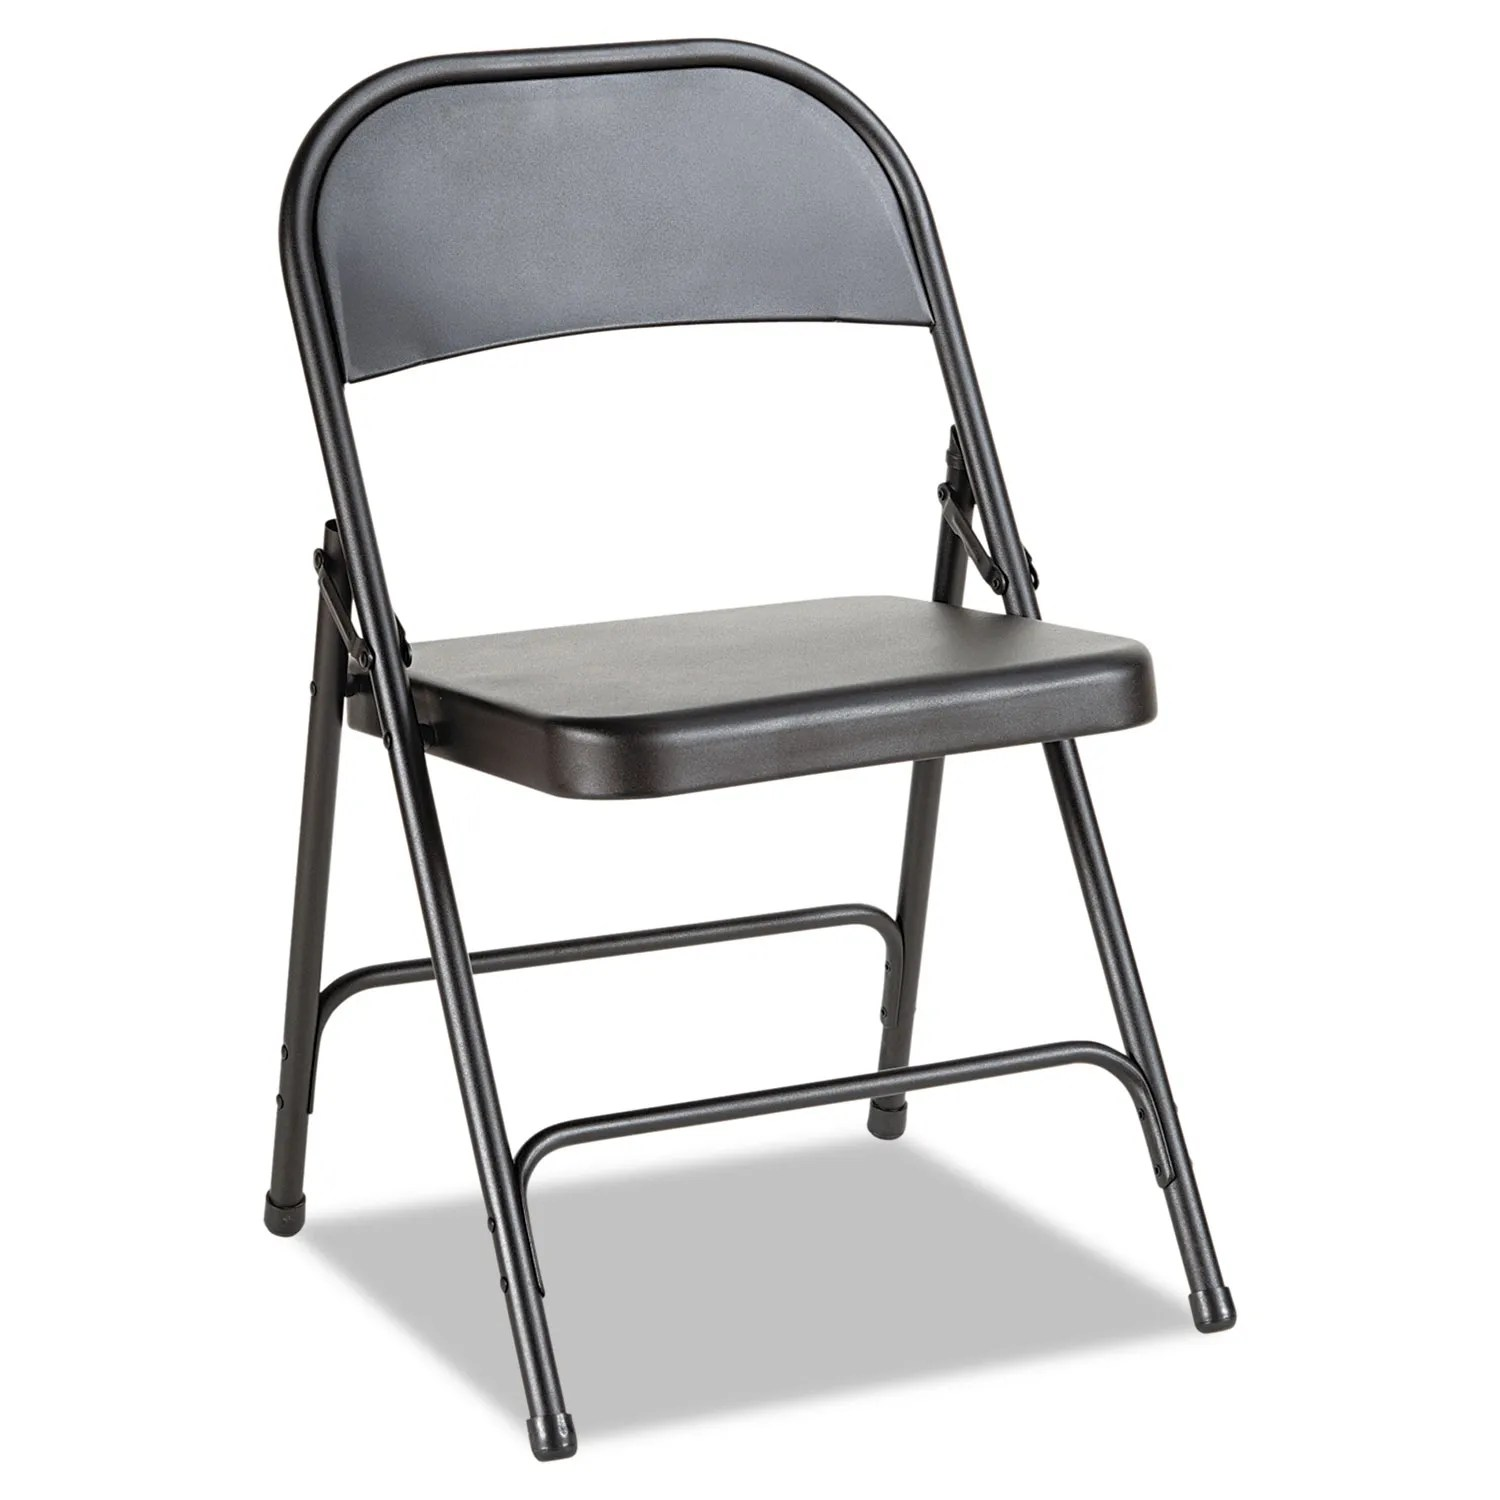 Steel Folding Chair With Two Brace Support Graphite Seat Graphite Back Graphite Base 4 Carton